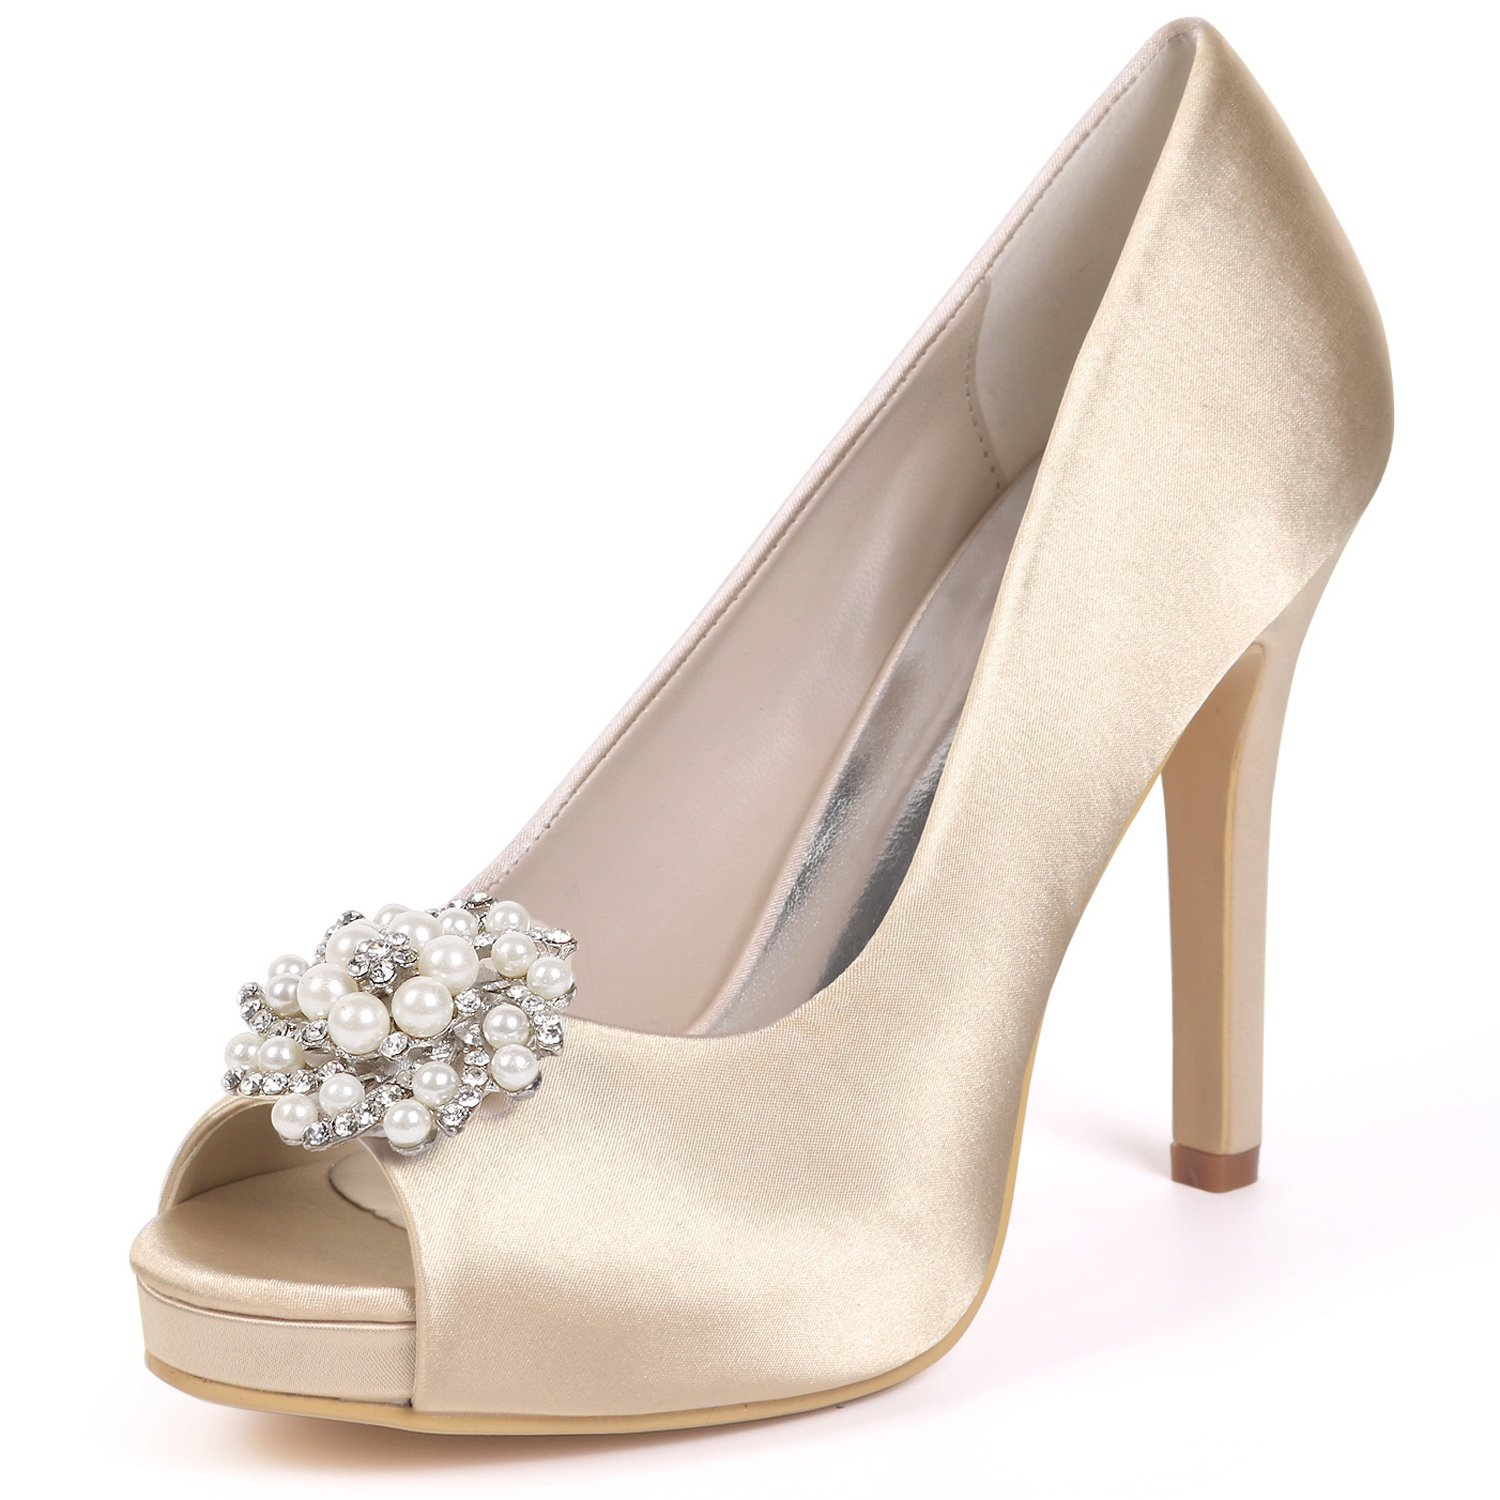 Champagne Layearn Femmes Chaussures De Mariage Strass Talons Hauts Stiletto Prom Taille Plate-Forme Peep Toe